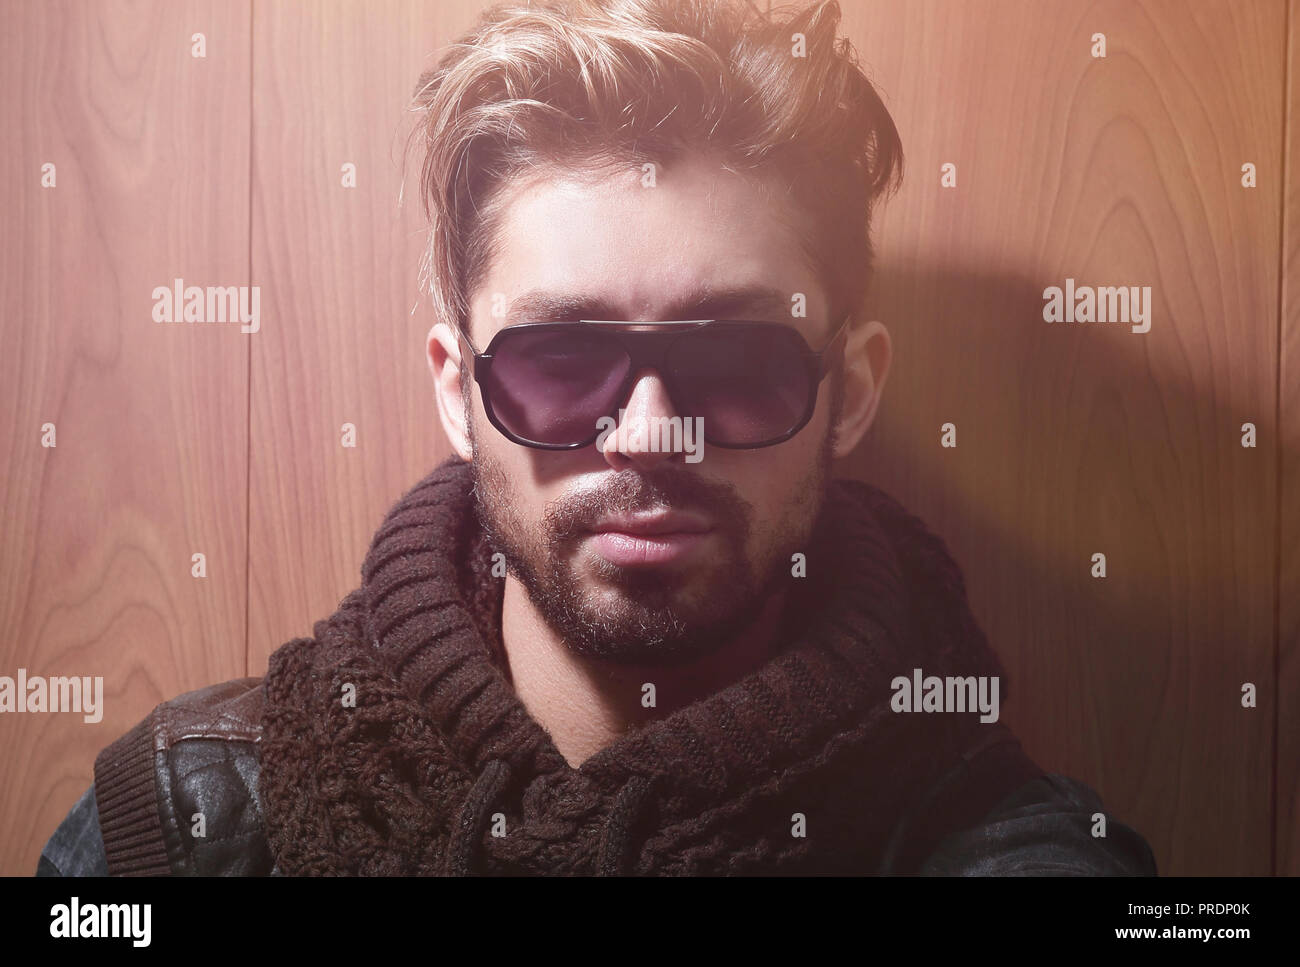 Portrait of a handsome mature man in sunglasses over wooden wall background. Men's beauty, fashion. - Stock Image